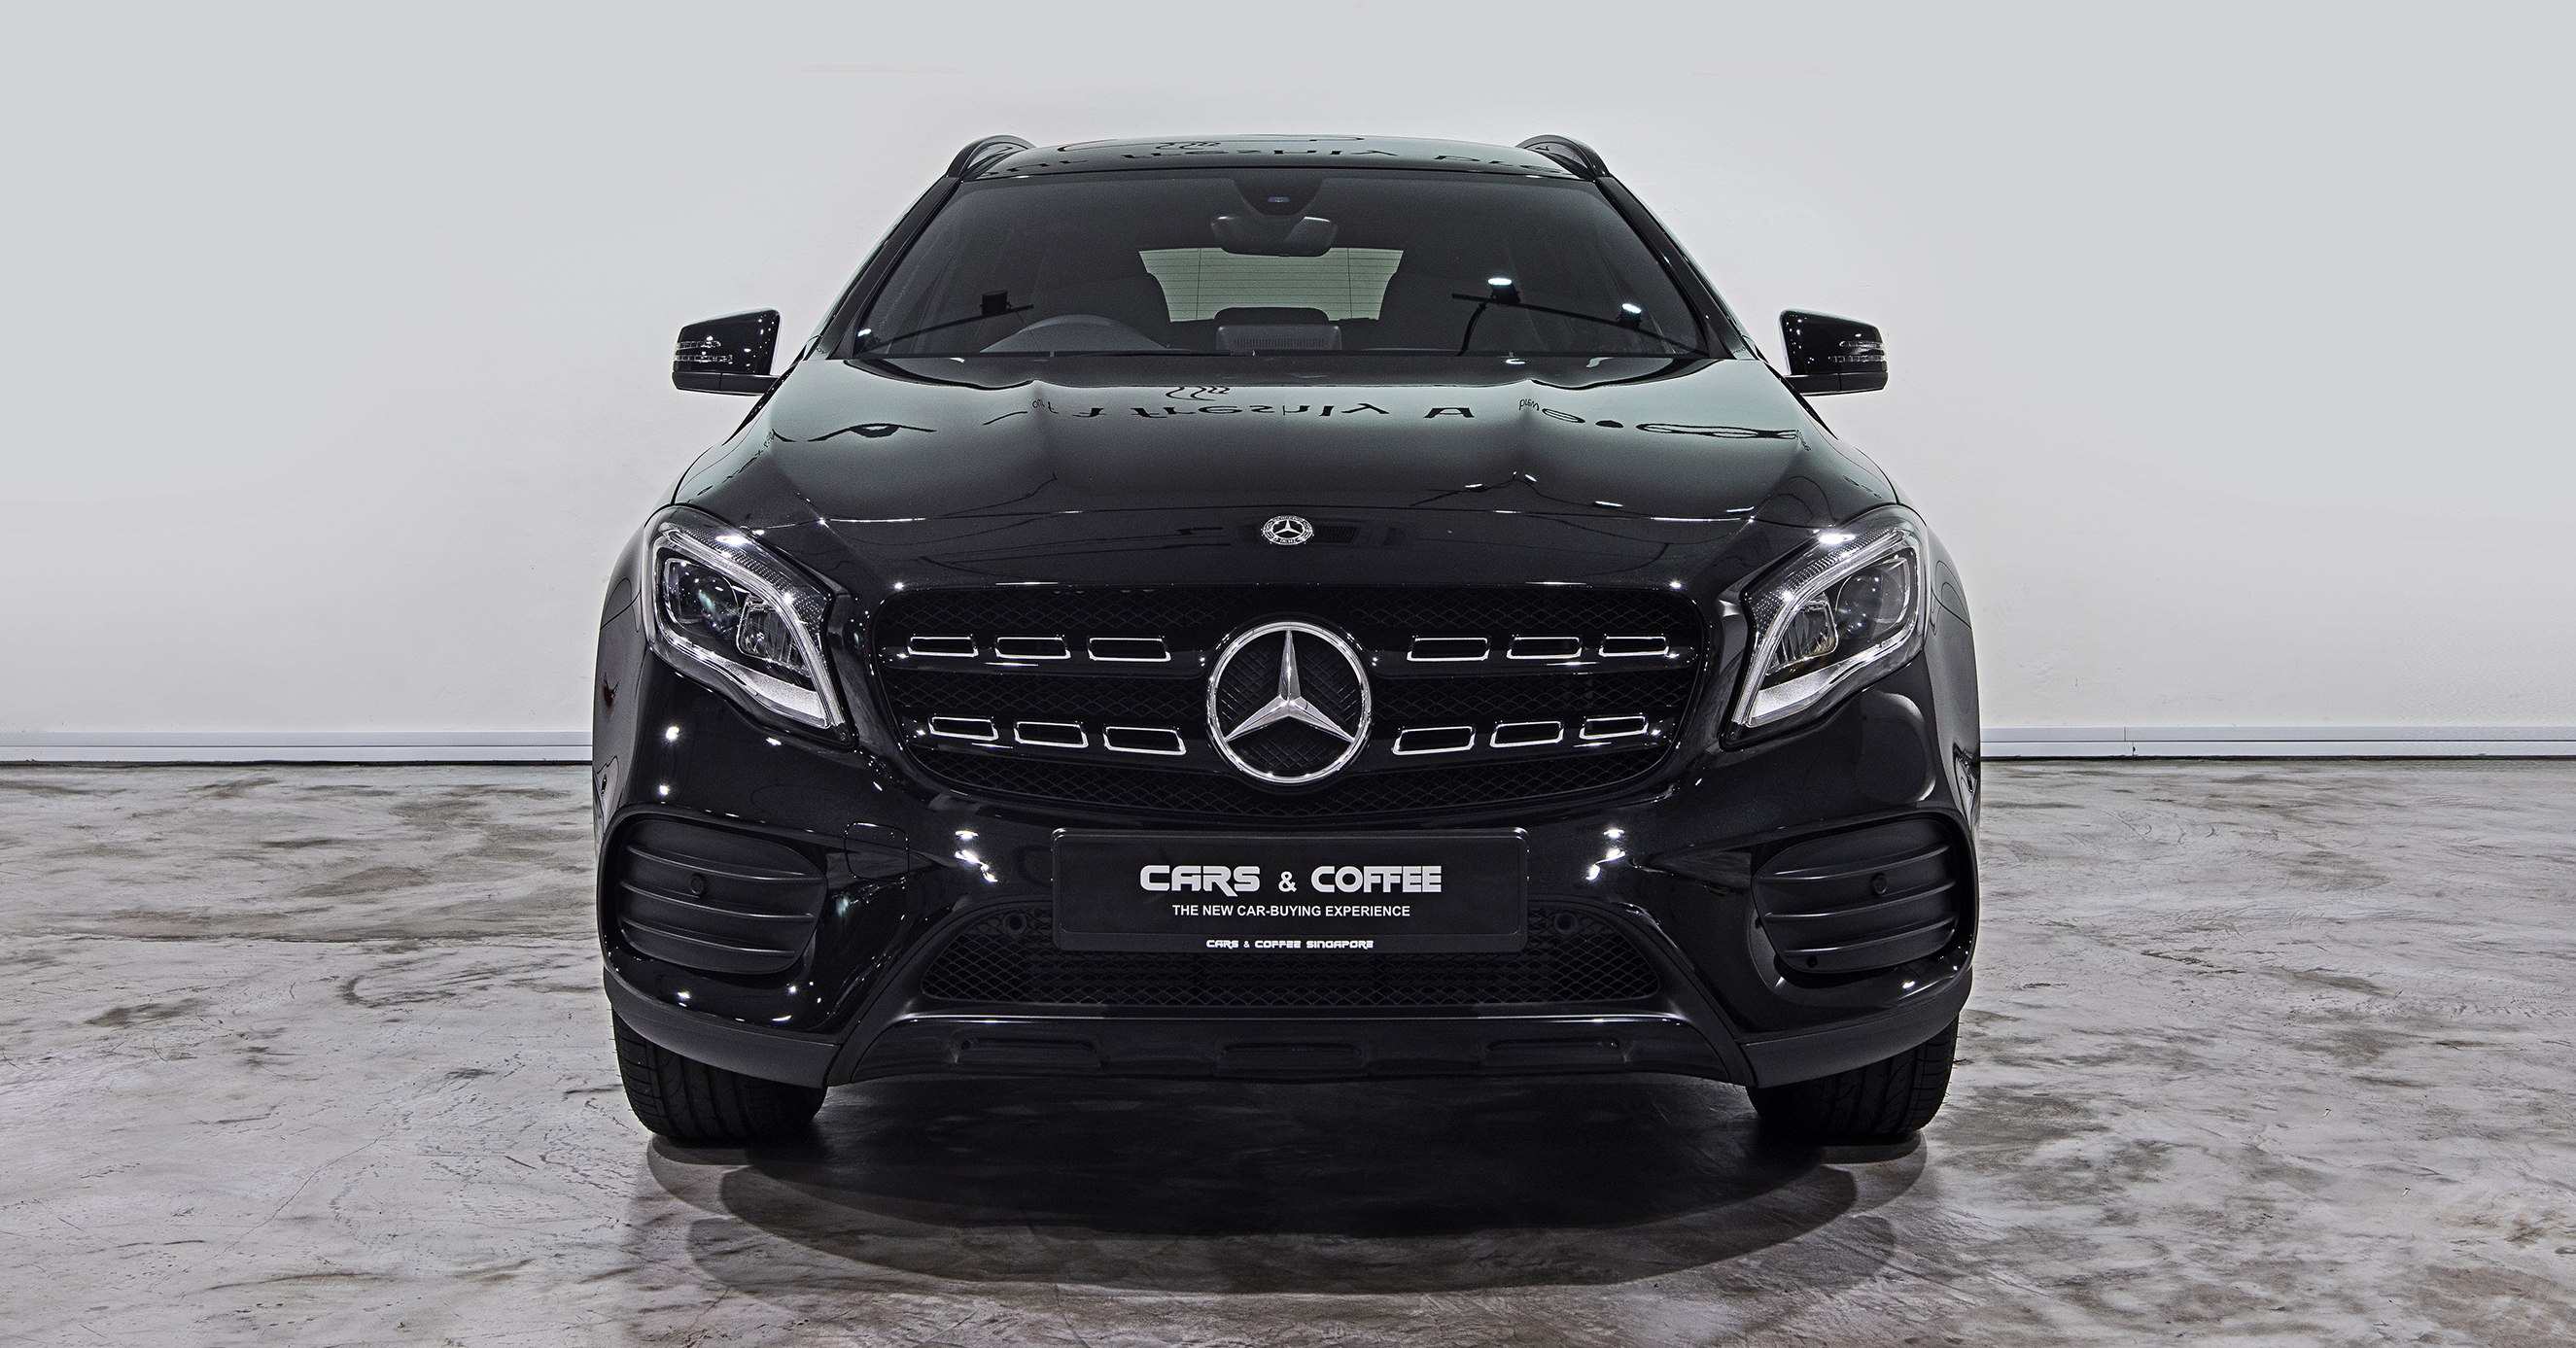 With the character of a Mercedes-Benz SUV, a sporting soul and a compact footprint, the turbocharged GLA is agile, adventurous and adaptable. It's at home in the city, eager when you're far from home, and a perfect fit for today, and tomorrow.